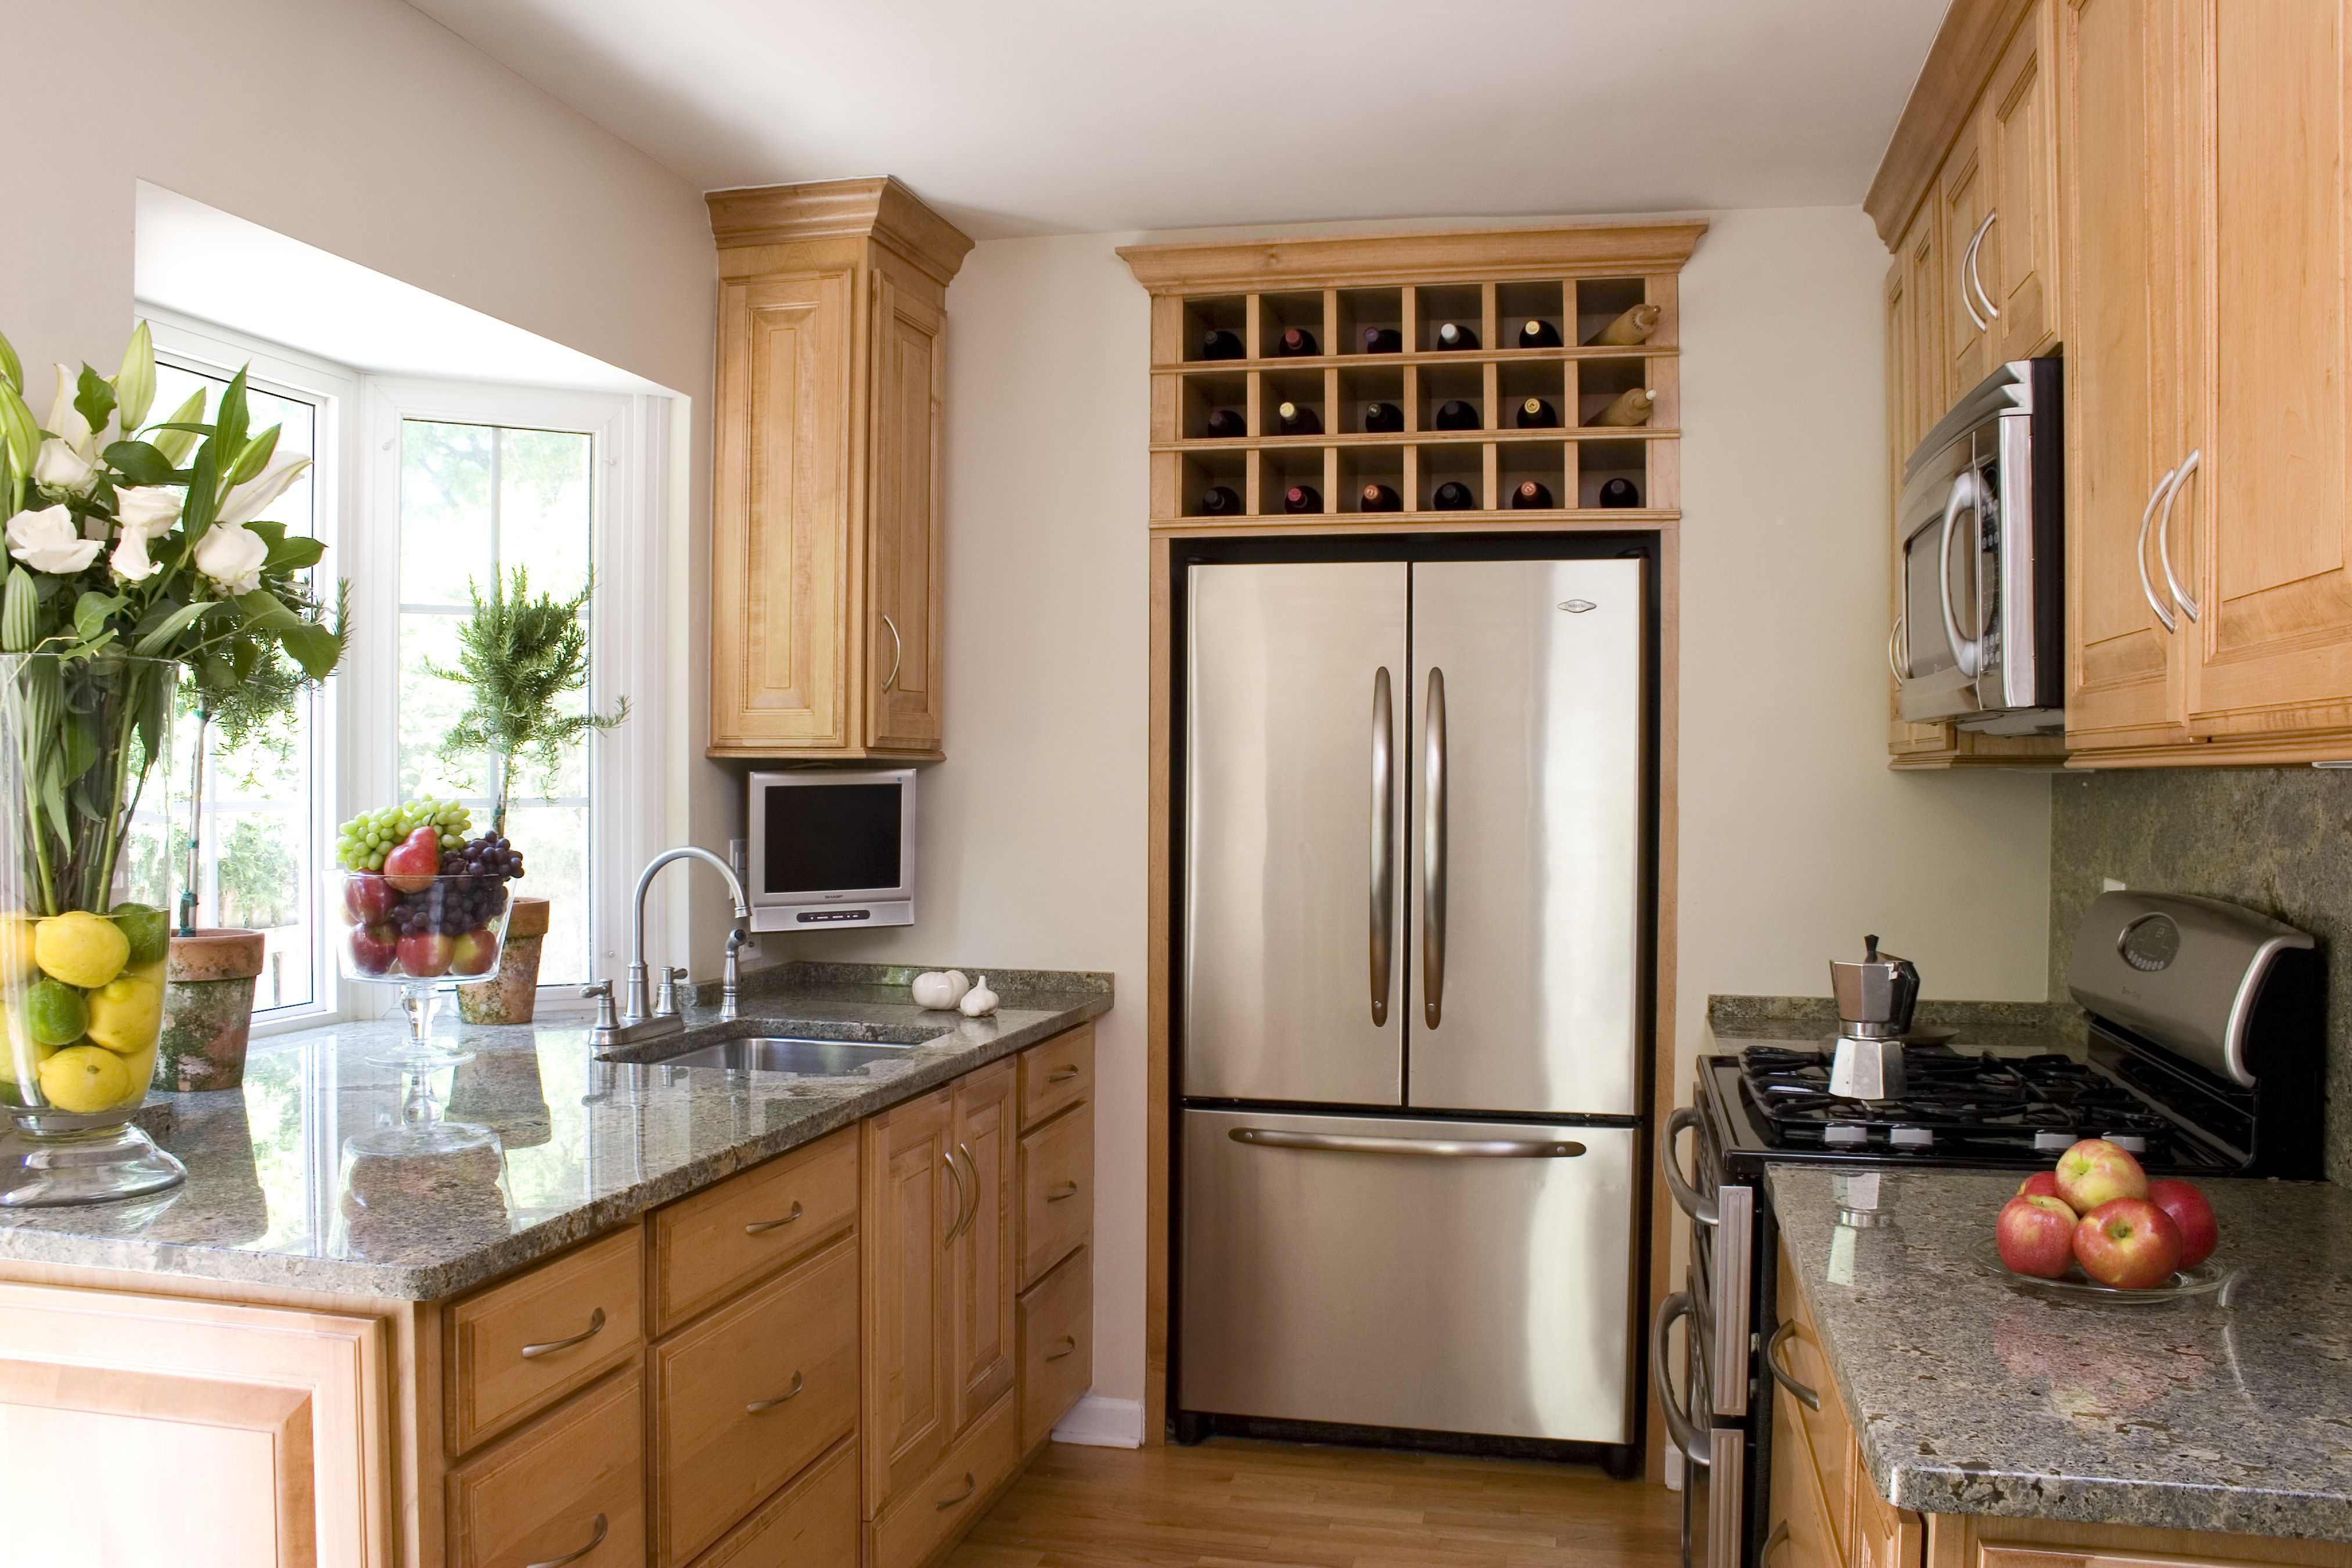 A Small House Tour: Smart Small Kitchen Design Ideas on Tiny Kitchen Remodel Ideas  id=24241